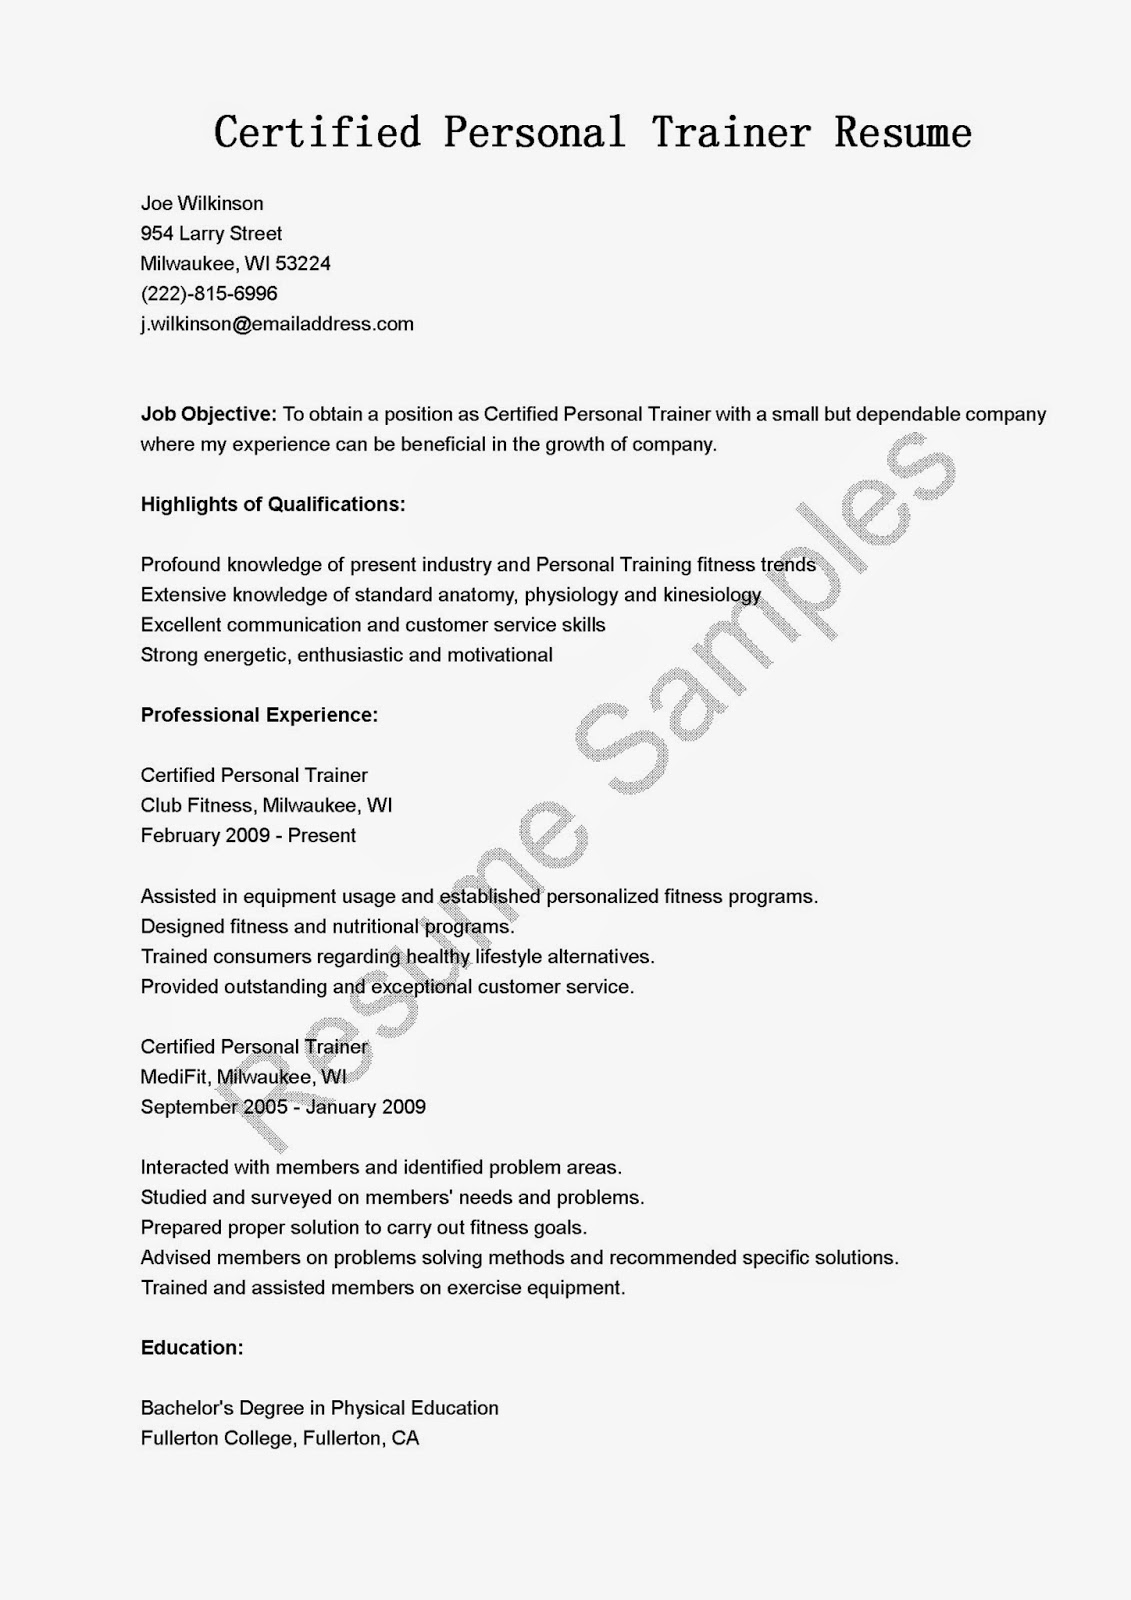 Personal Trainer Resume Objective Examples Resume Samples Certified Personal Trainer Resume Sample